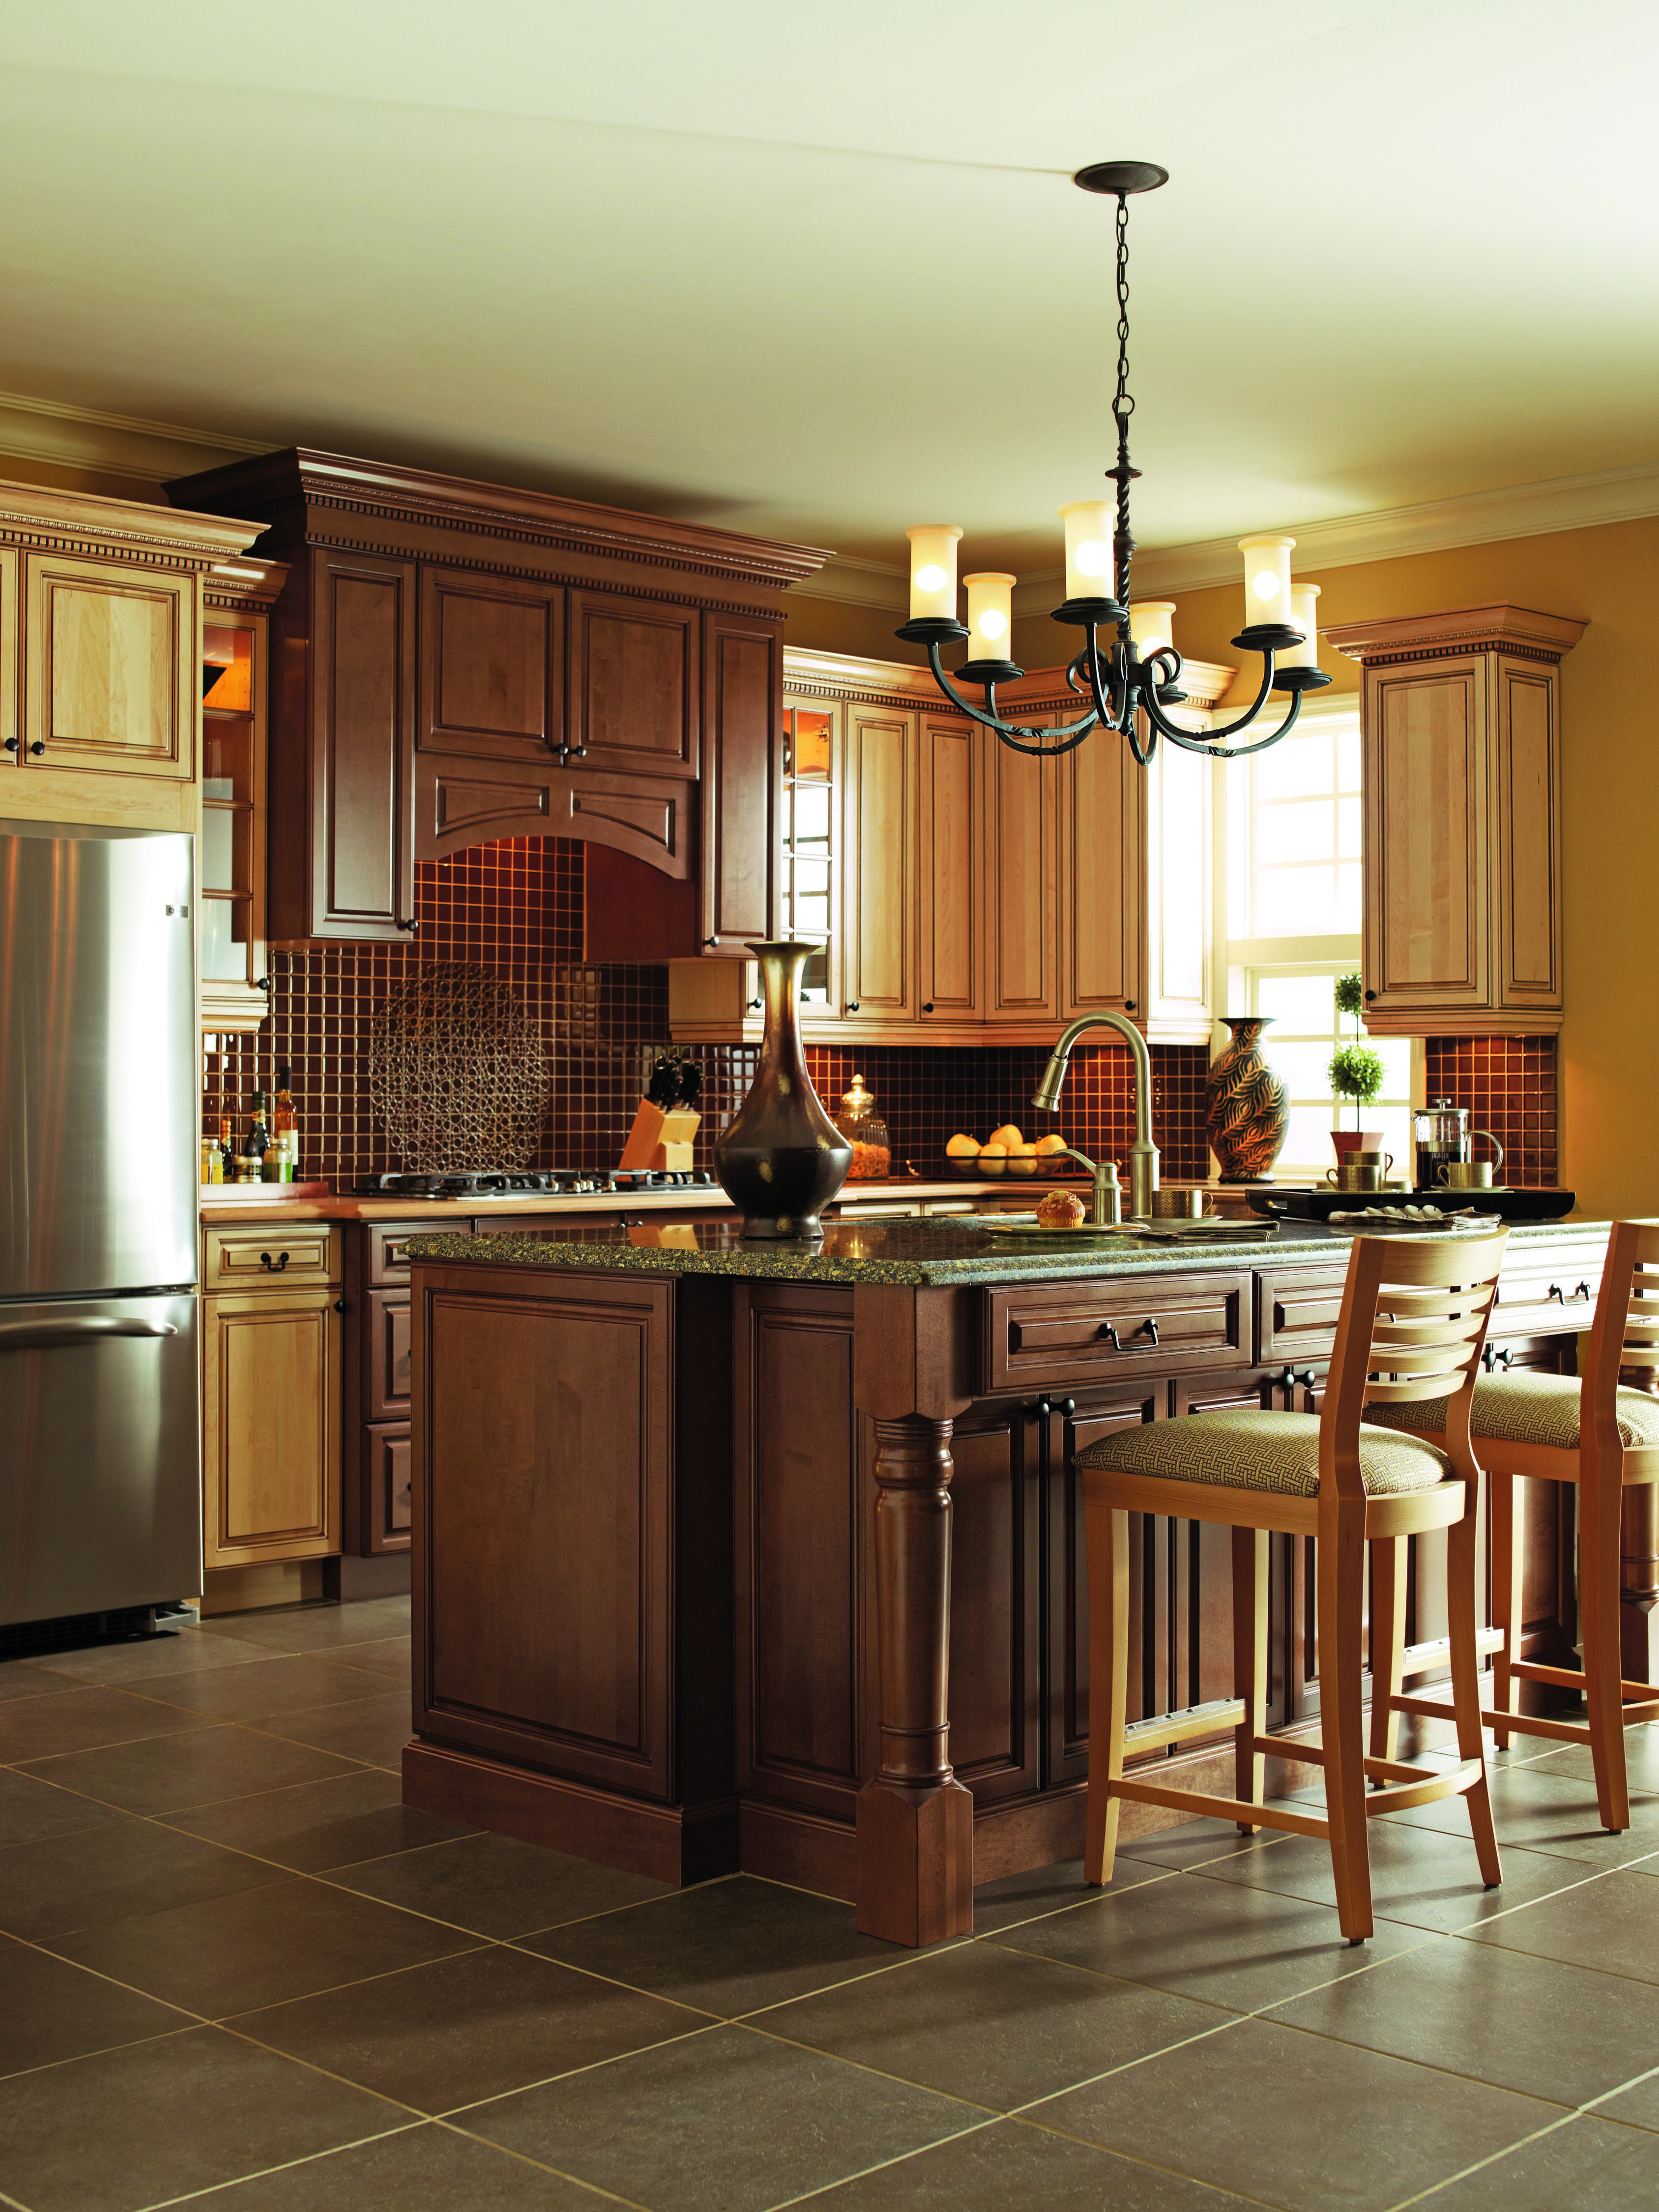 Home Depot Kitchen Cabinets Canada Traditional Kitchen From Thomasville Classic Fall